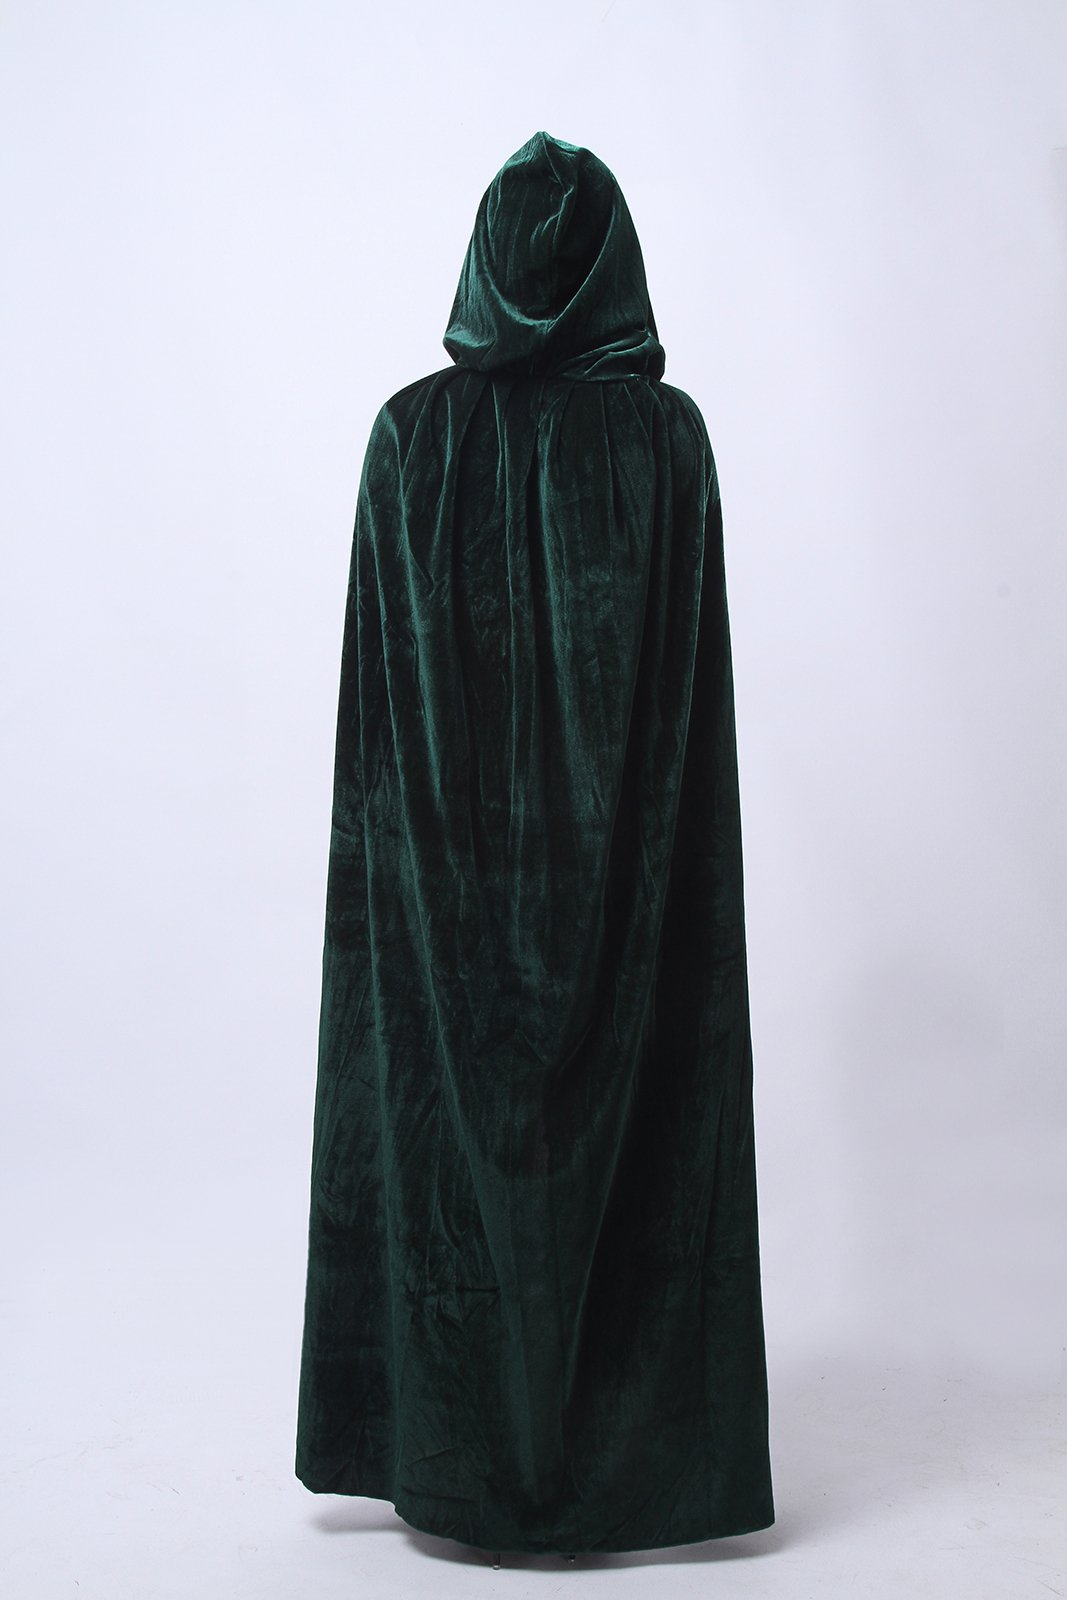 Nuoqi Mens Halloween Costumes Unisex Adults Cosplay Green Cape Cosplay Costumes by Nuoqi (Image #6)